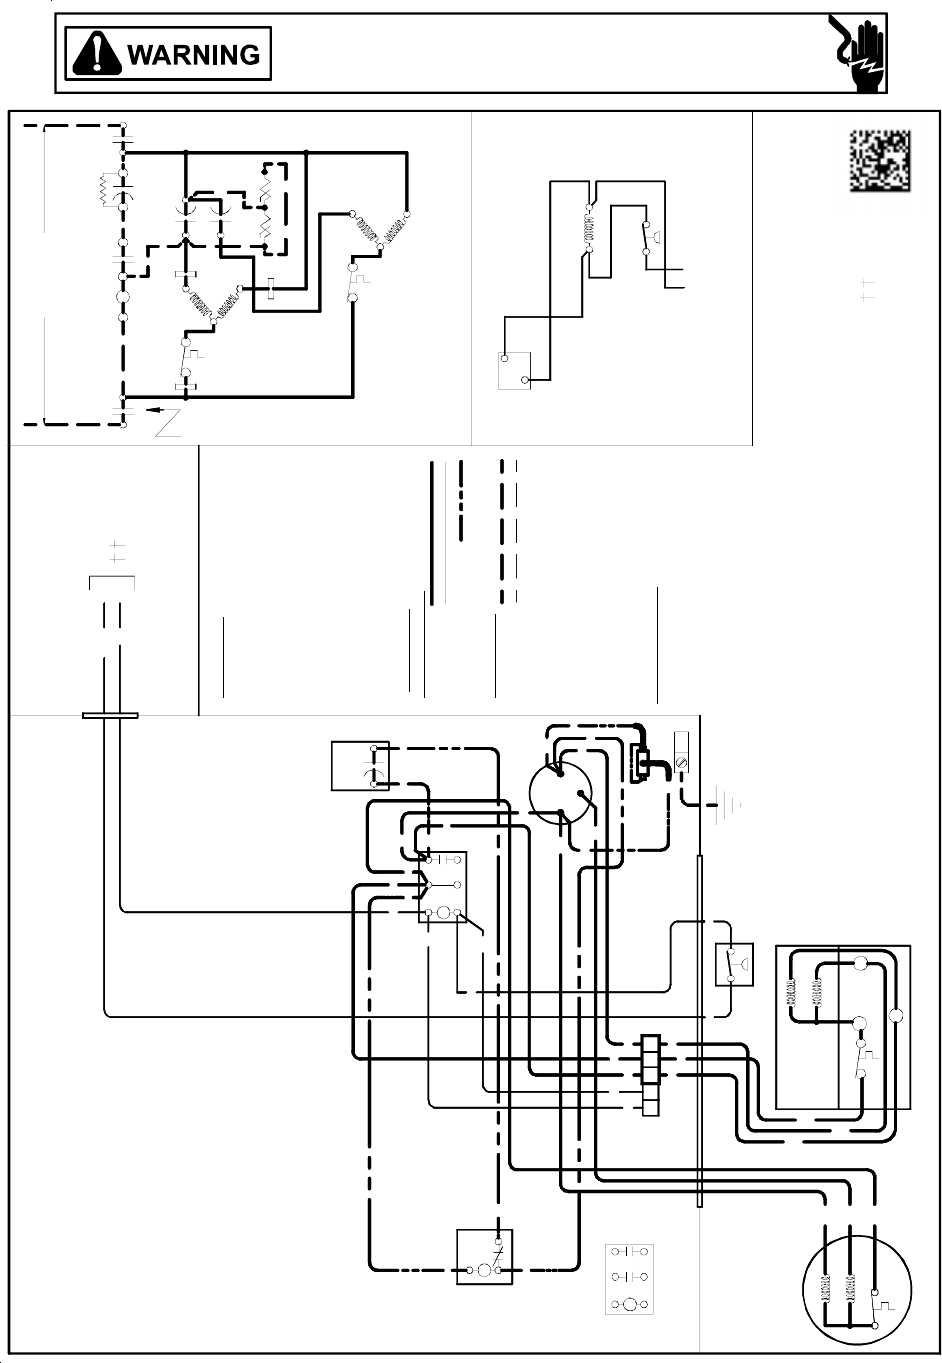 amana hvac wiring diagrams   26 wiring diagram images